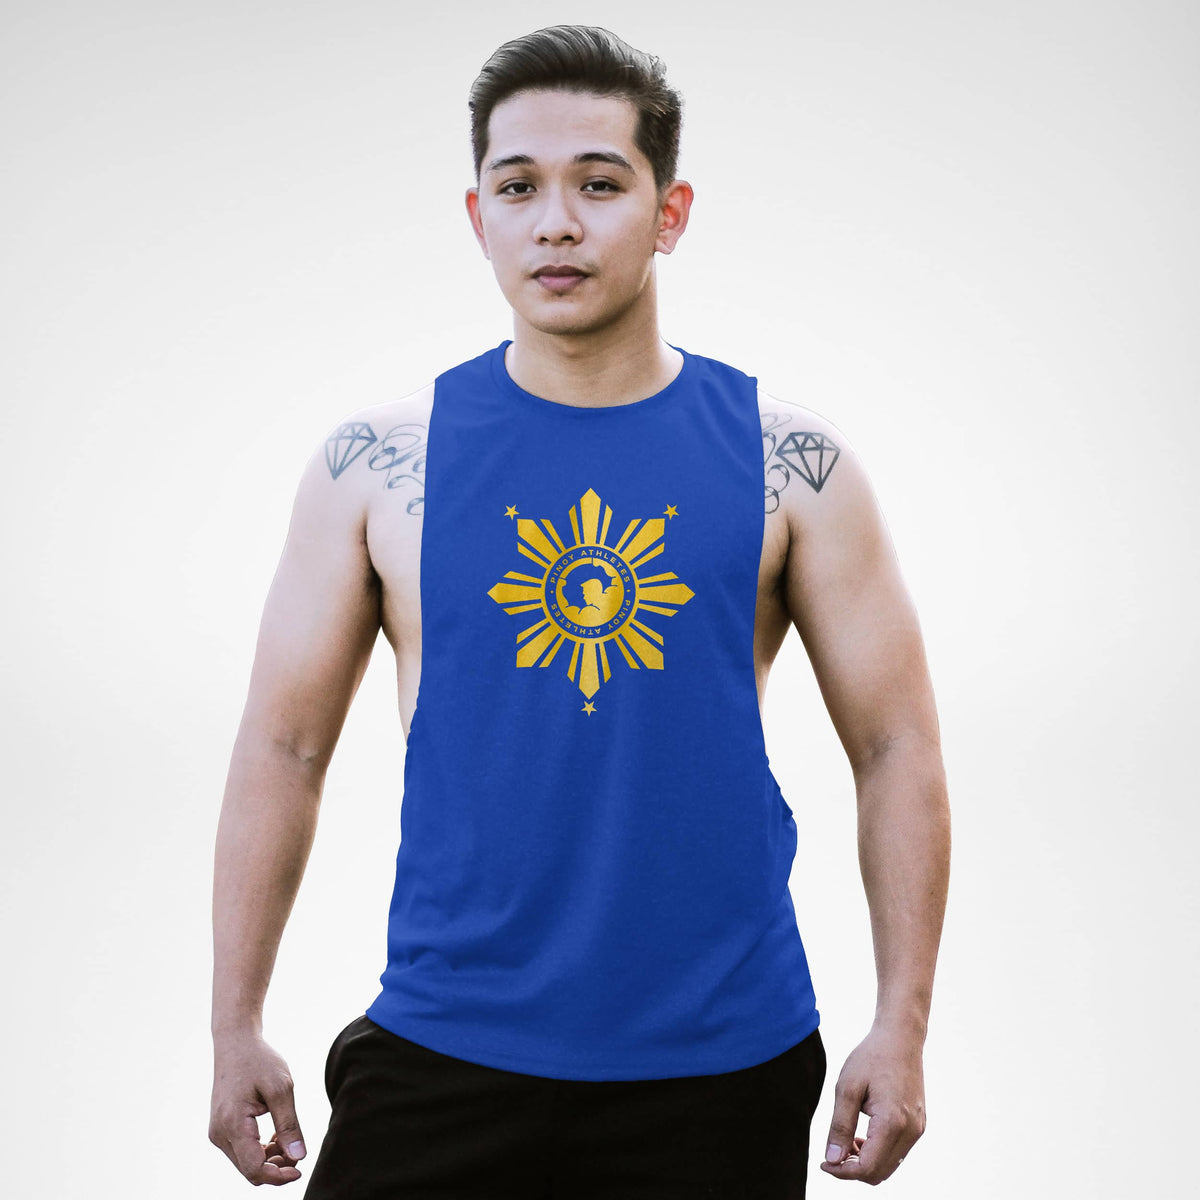 AM155 Pinoy Athletes Openside Tank Top